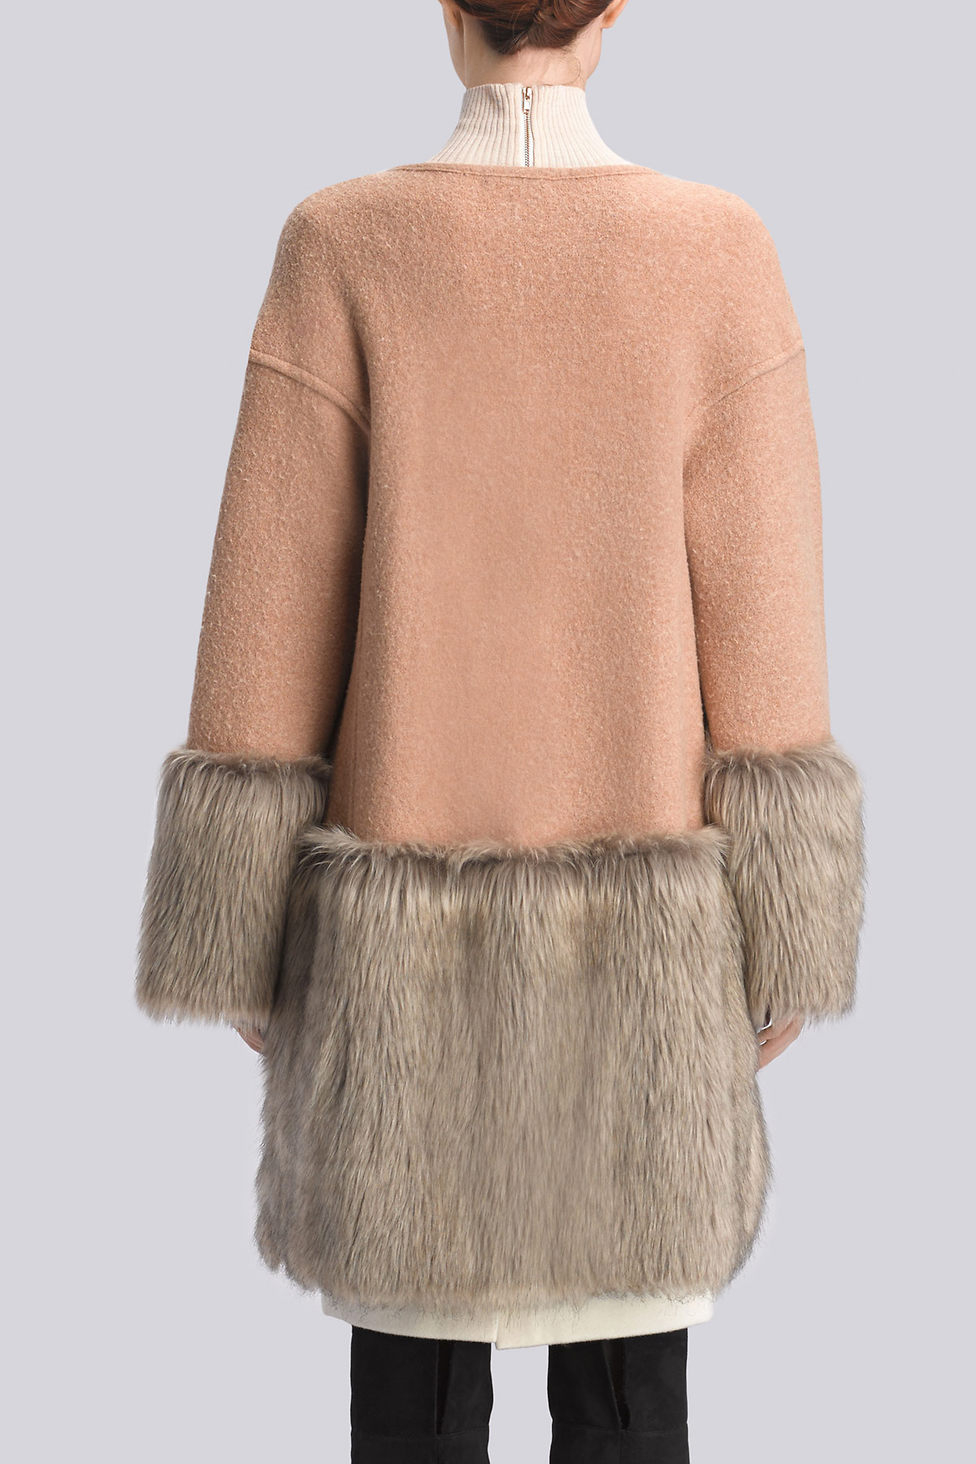 r0nd.tk: faux fur trimmed coat. From The Community. Amazon Try Prime All wool blend/ Faux fox fur trim Roomy wrap coat can fit thick Calvin Klein Women's Anorak Wool Faux Fur Trimmed Coat. by Calvin Klein. $ - $ $ 77 $ 99 Prime. FREE Shipping on eligible orders.